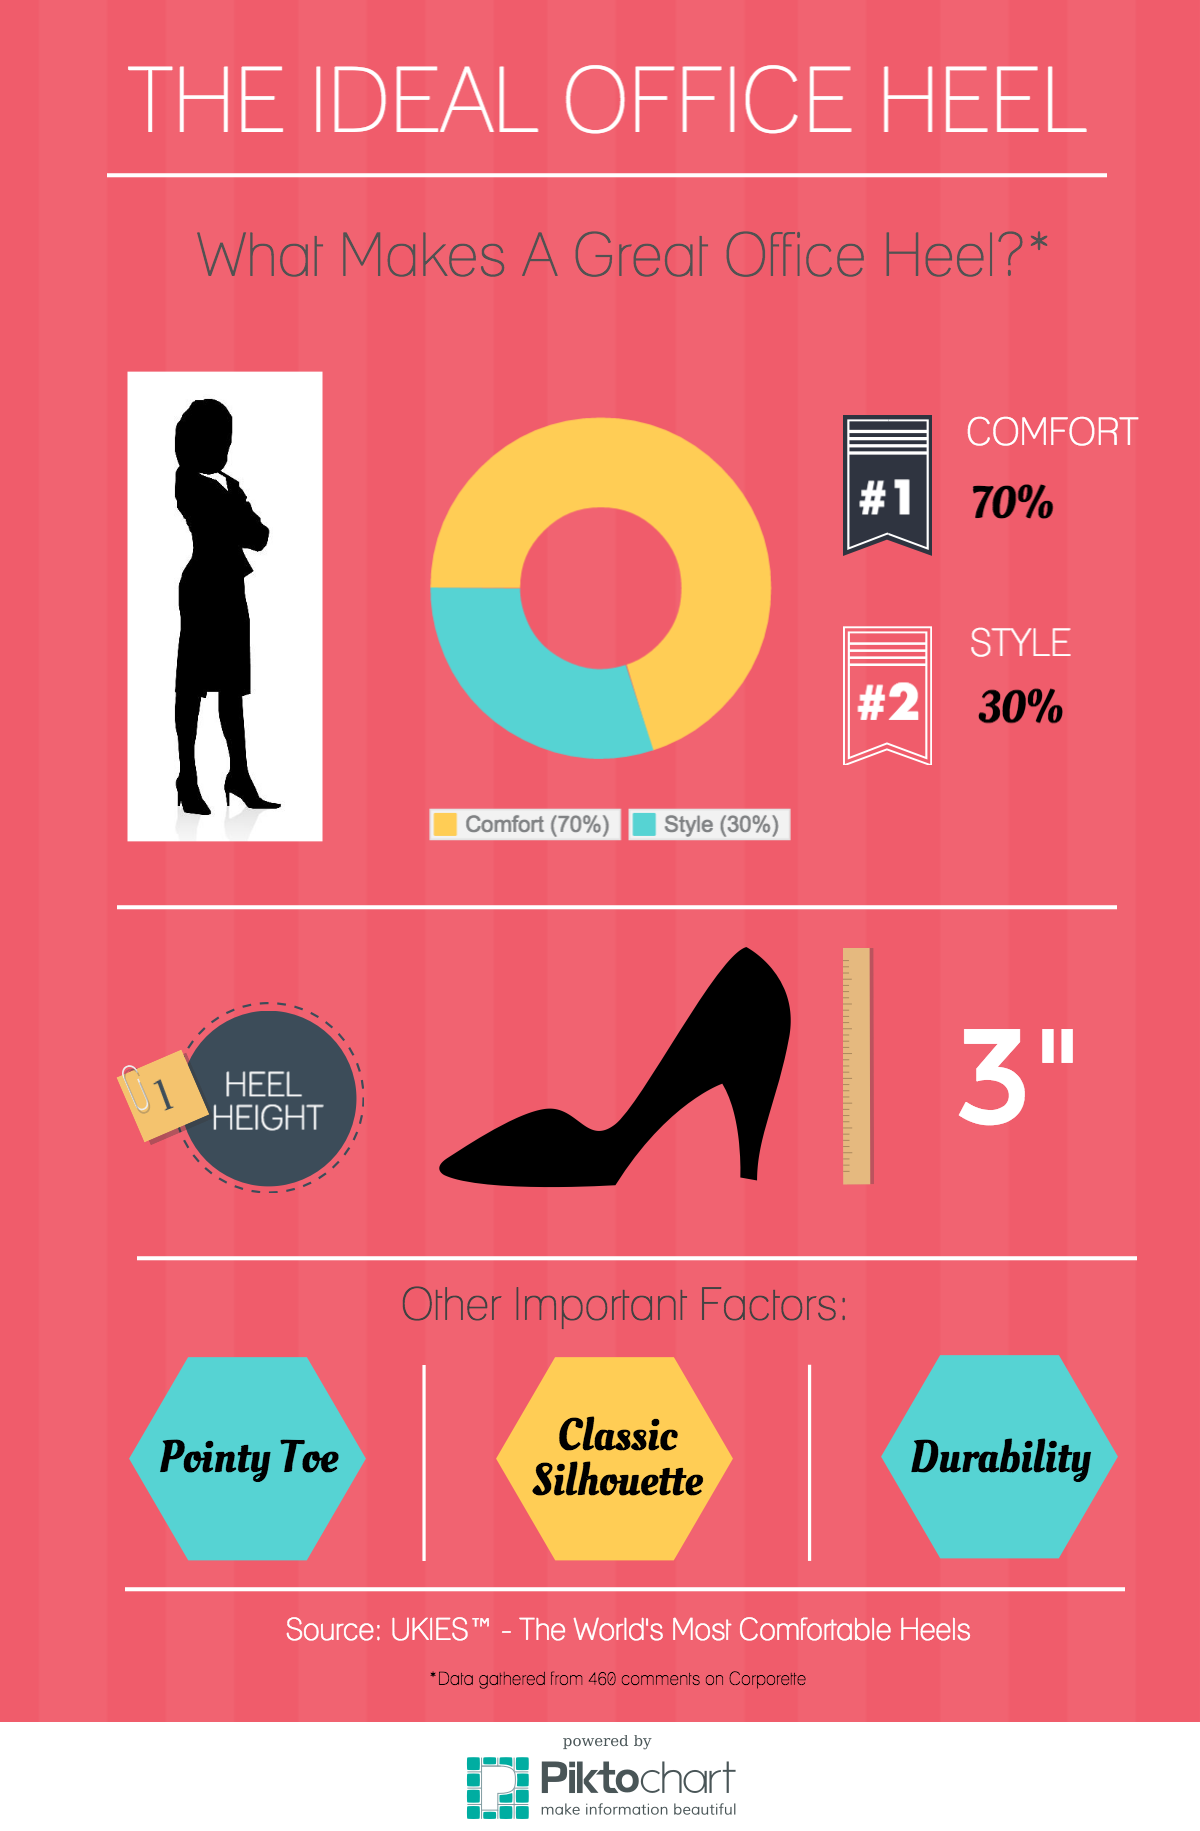 Cheap clothing stores :: Comfort shoe brands for women